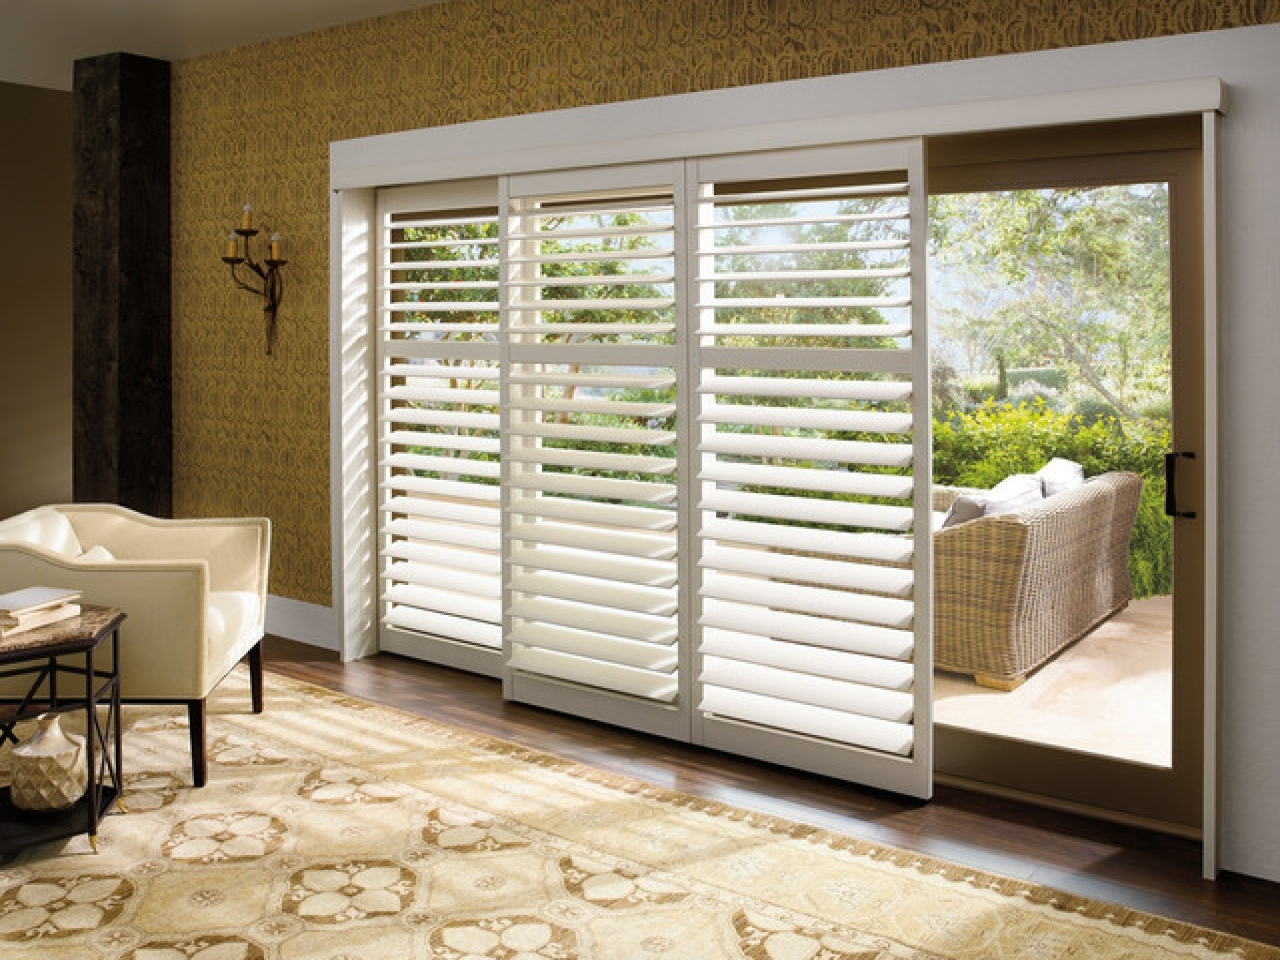 Window Coverings For Sliding Patio Doors Ideaswindow treatments for sliding glass doors ideas tips